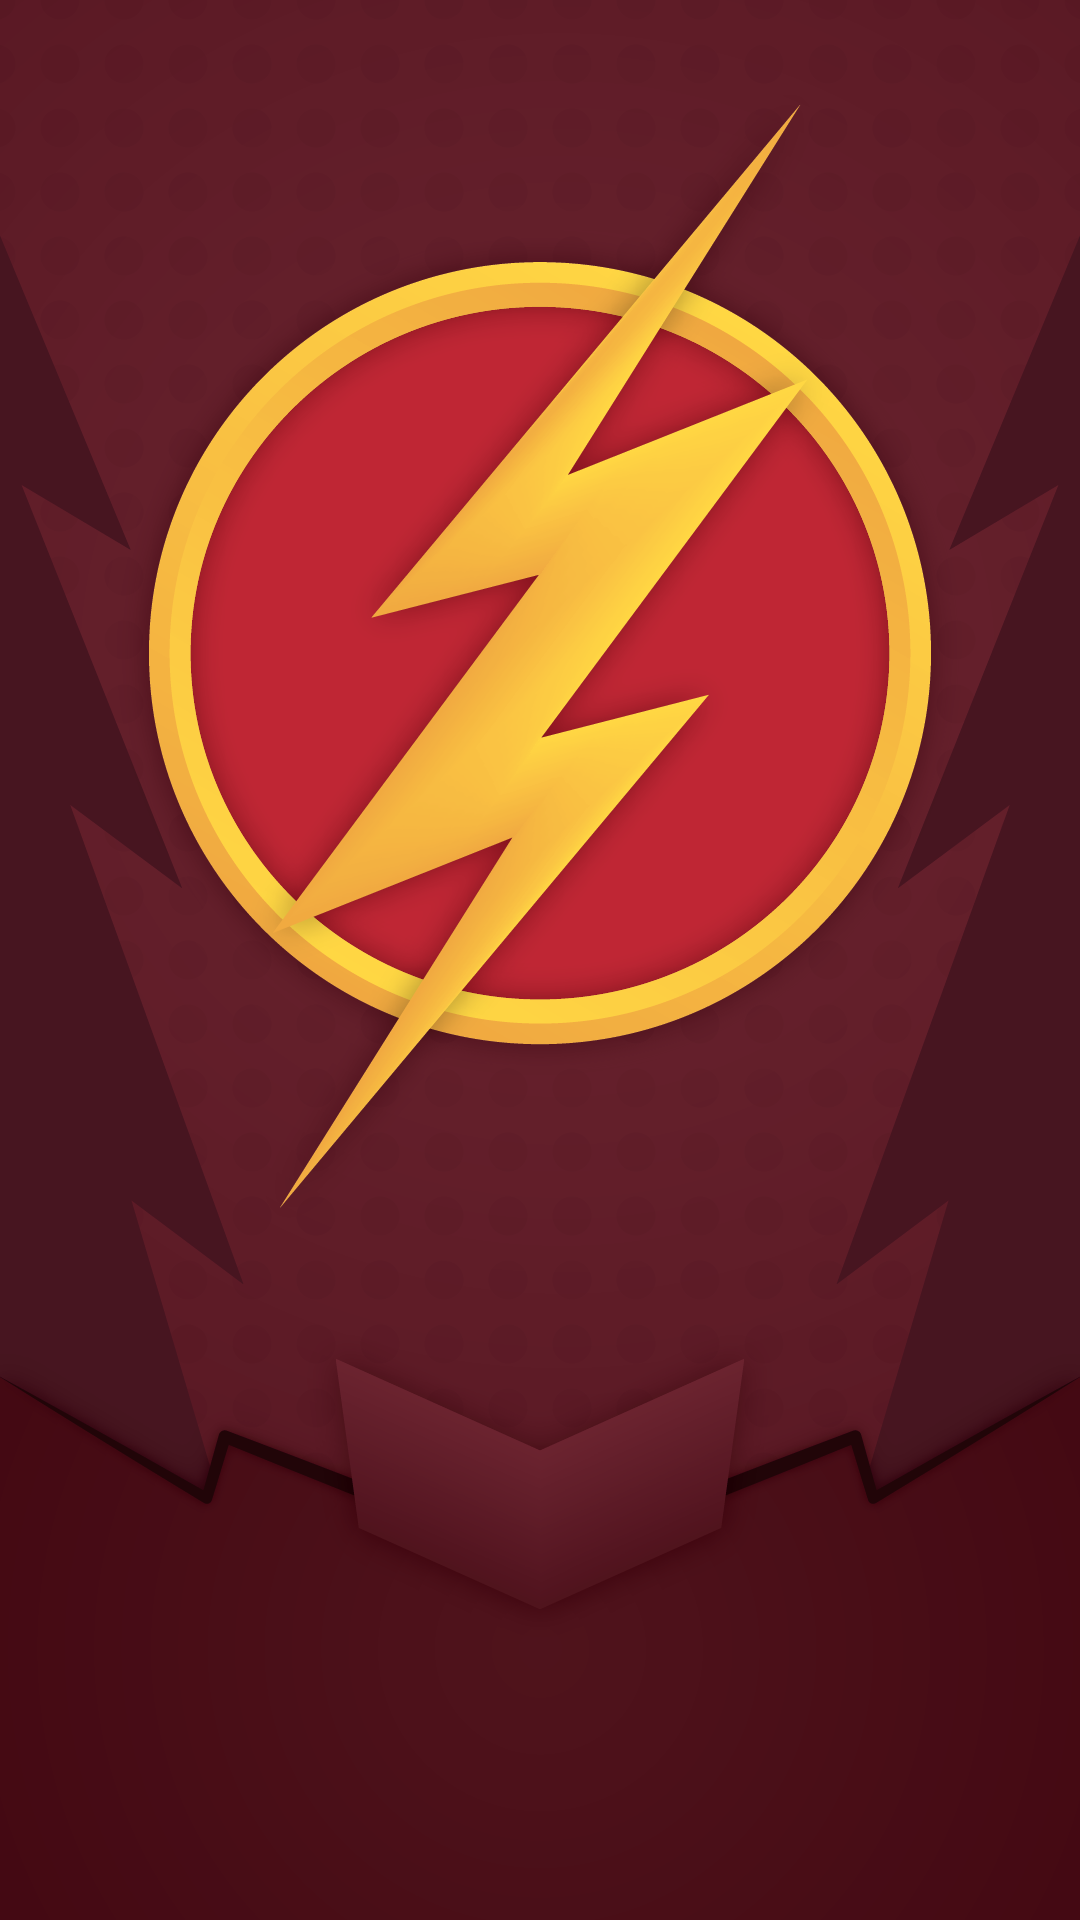 barry allen the flash wallpapers hd free download | hd wallpapers